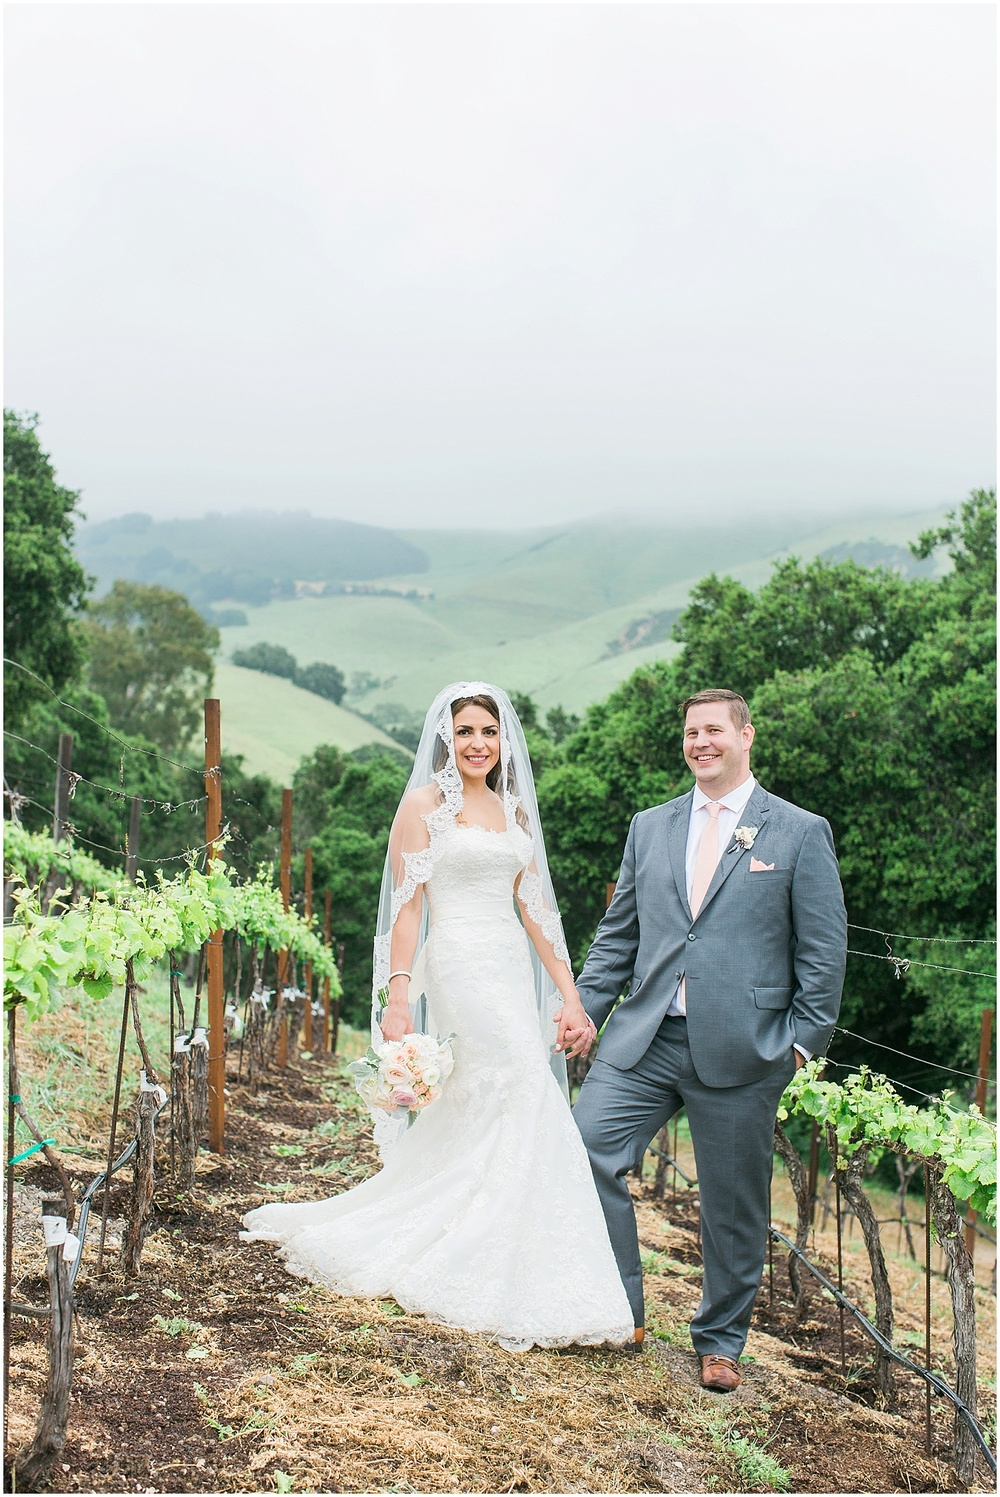 Carmel_holman_ranch_wedding_photographer-033.jpg